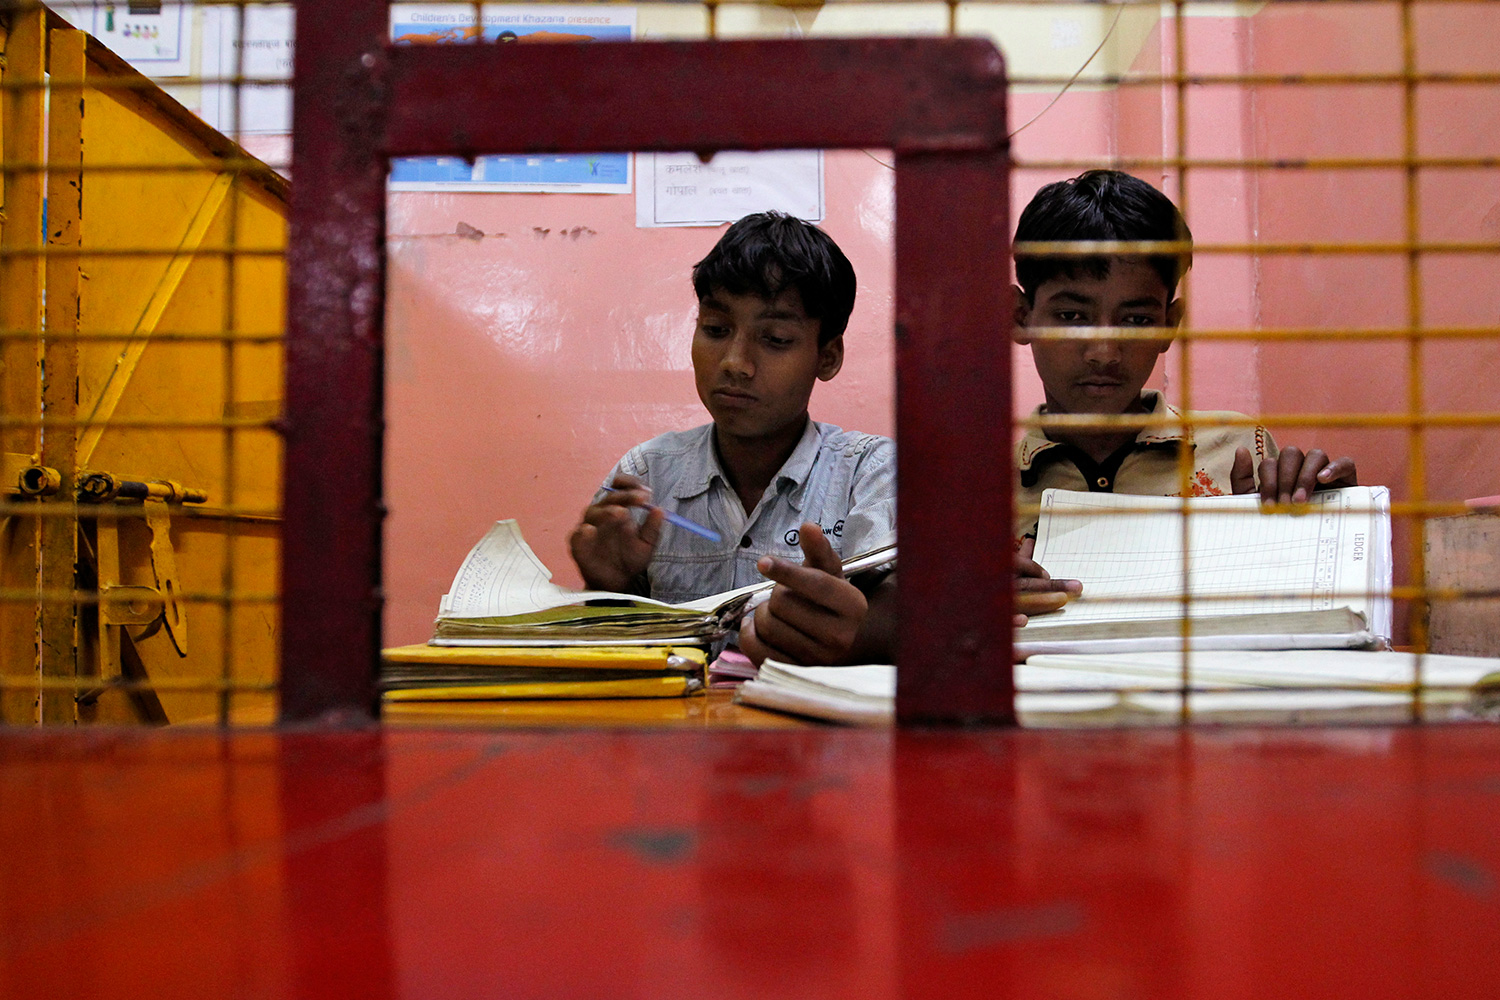 The photo shows two children behind a cashier's window looking through stacks of paper.